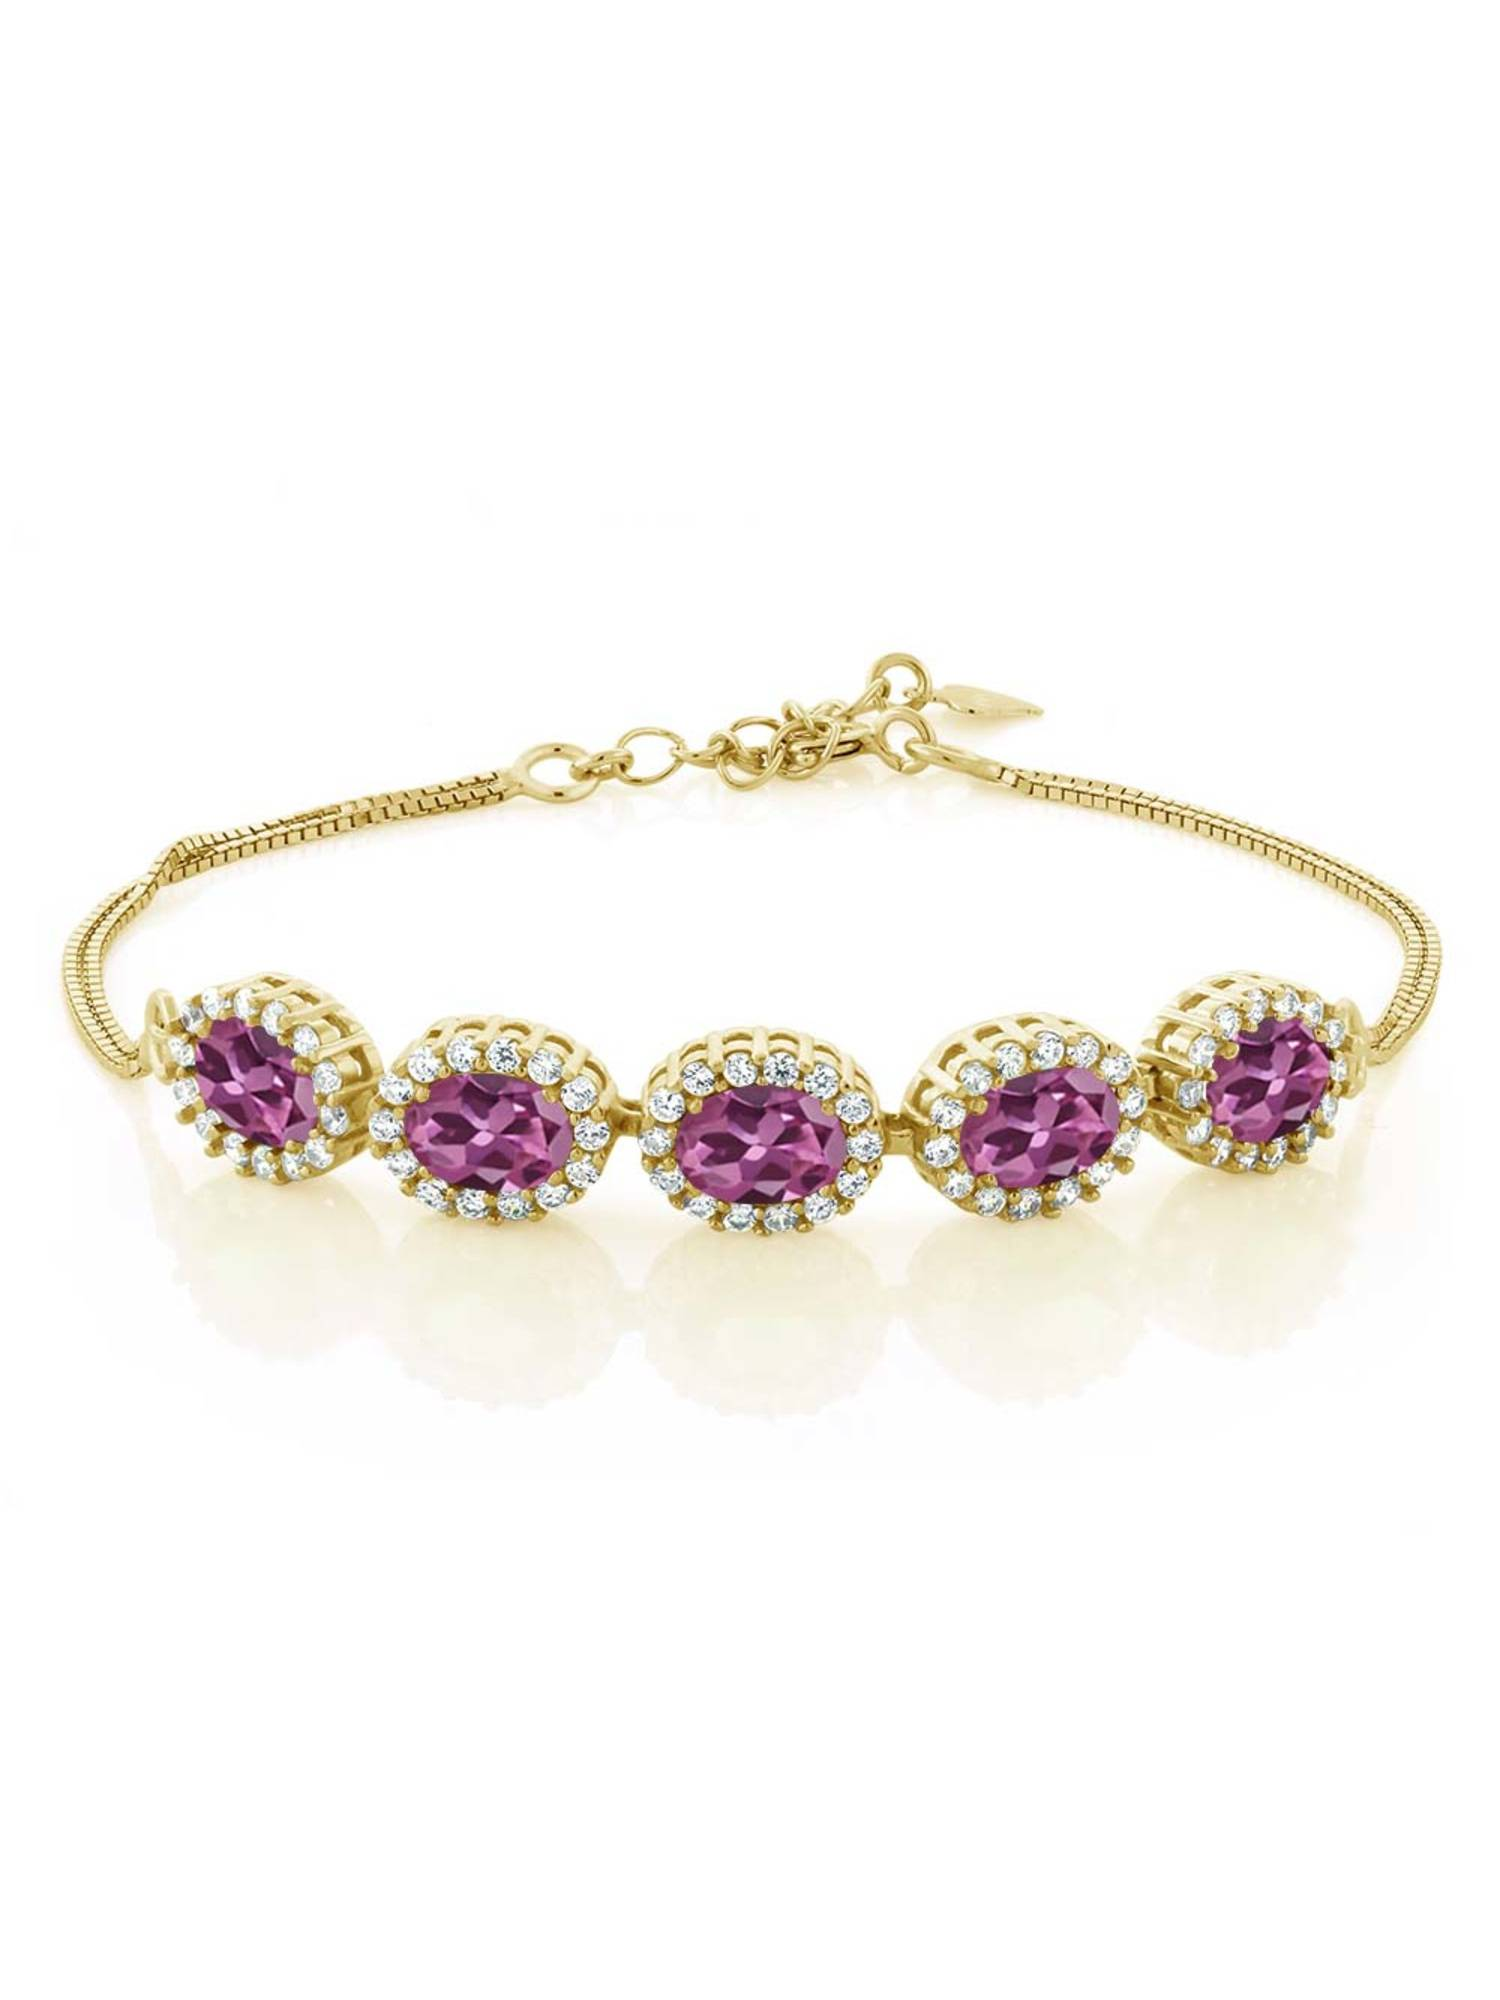 4.54 Ct Oval Pink Tourmaline AA 18K Yellow Gold Plated Silver Bracelet by